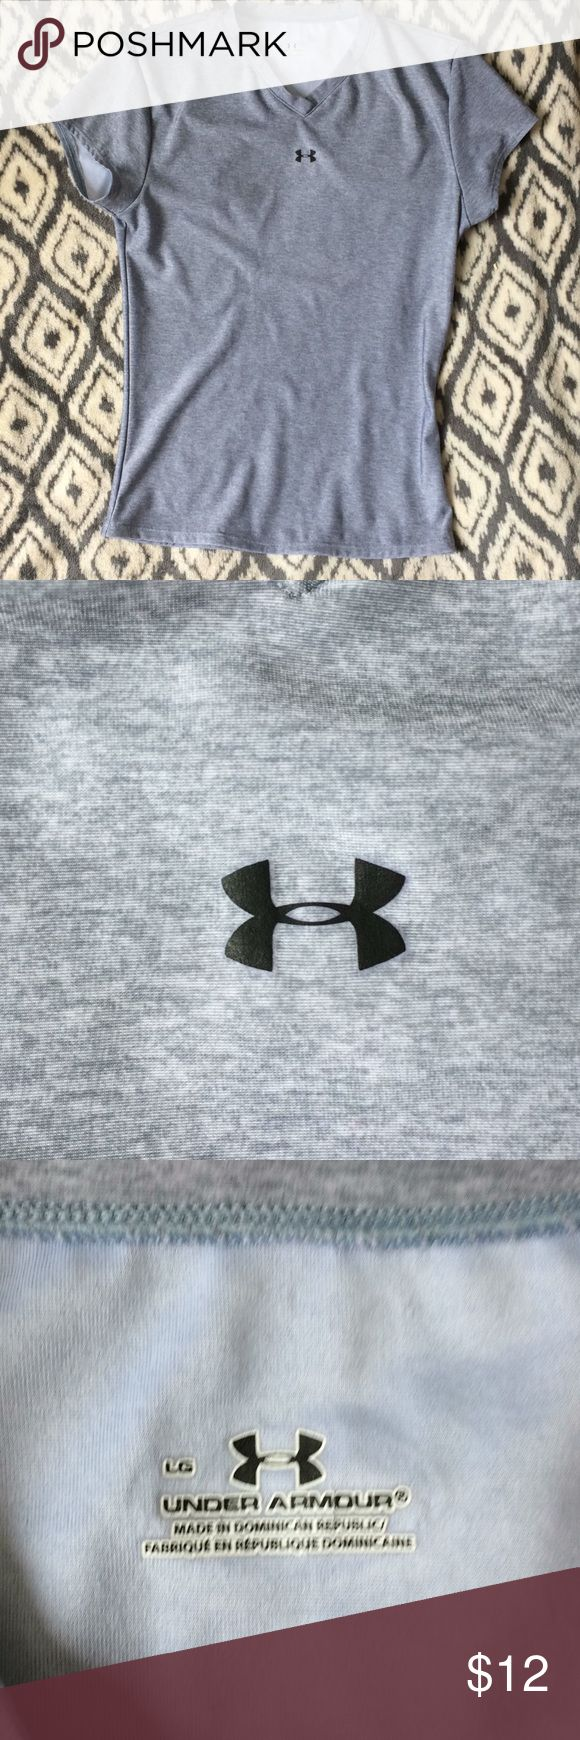 Large under armour T-shirt Gray Heathered gray under armour T-shirt  No rips or stains   Slight piling on the front   Feel free to ask any questions! Under Armour Tops Tees - Short Sleeve